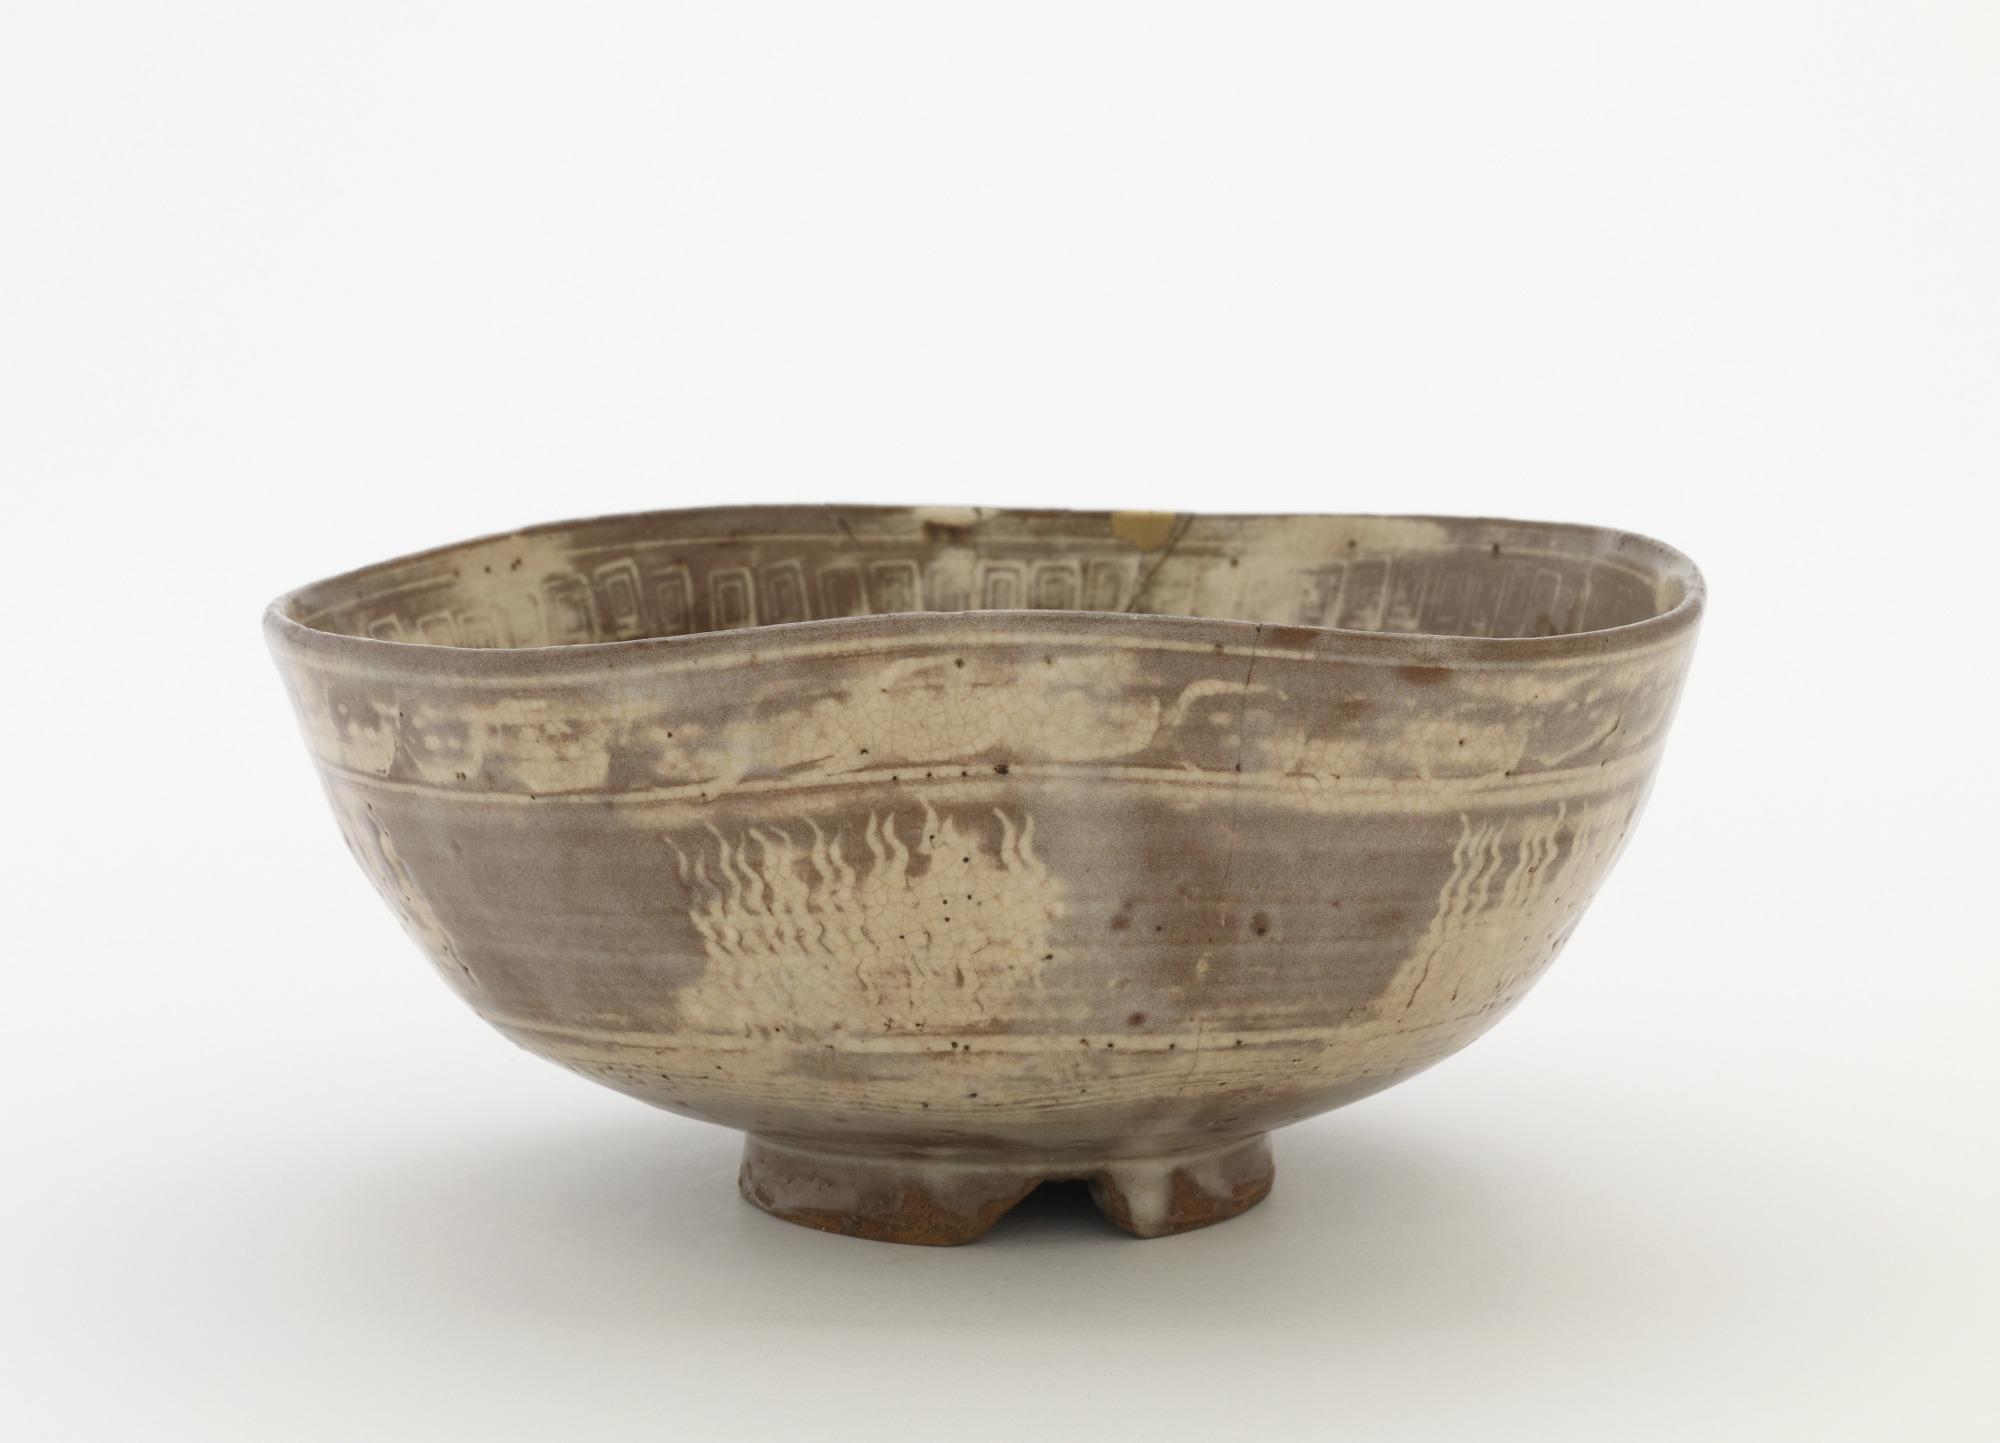 Tea bowl or serving bowl, profile